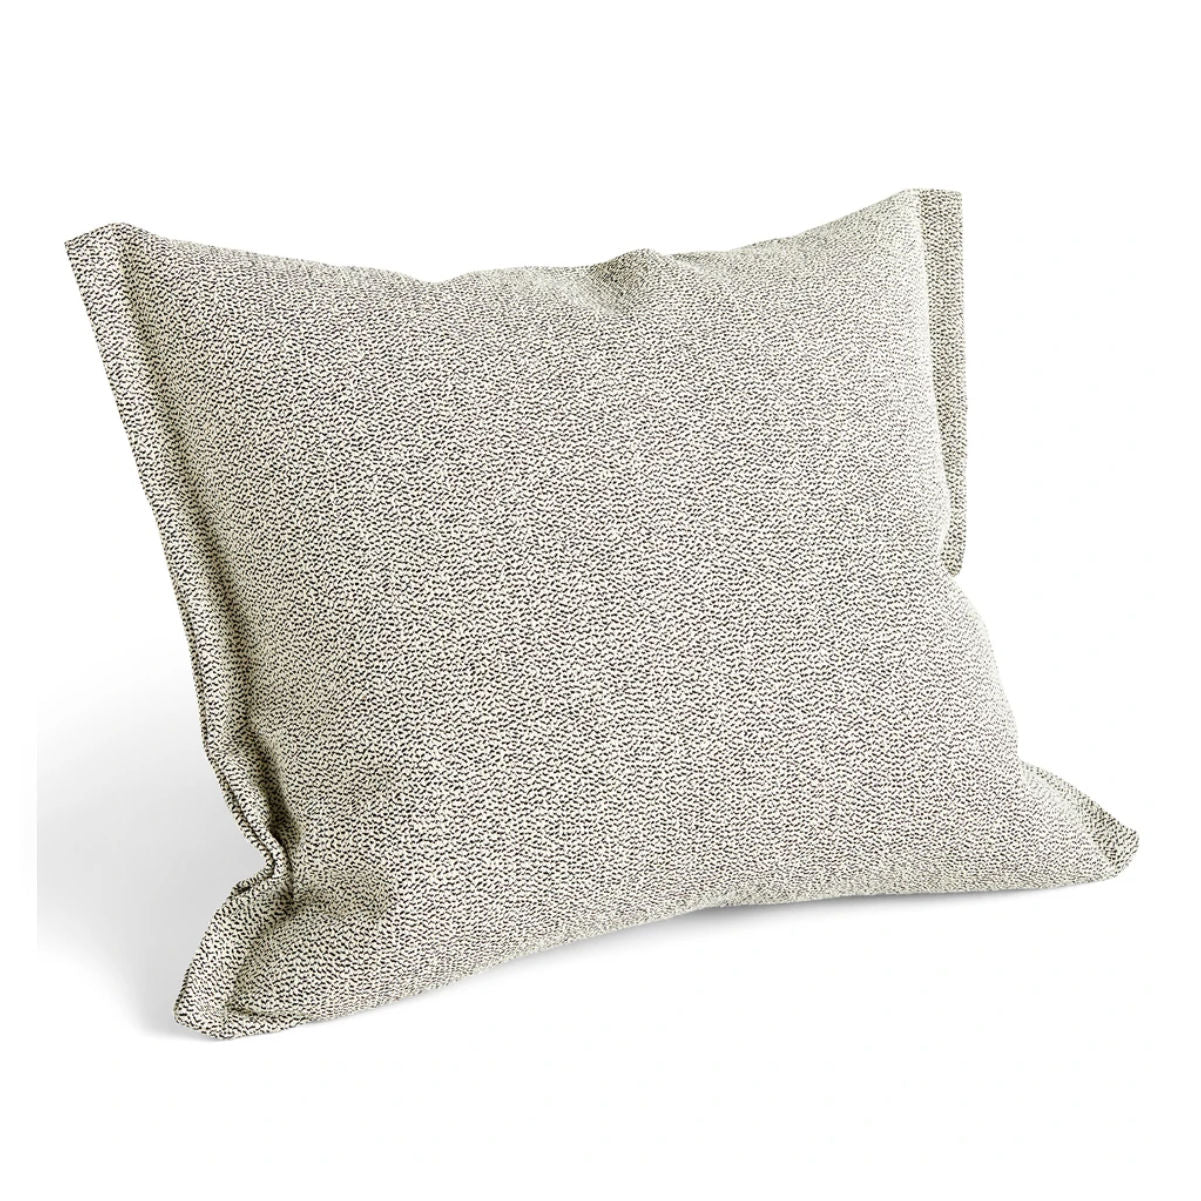 Hay Plica Sprinkle cushion, cream